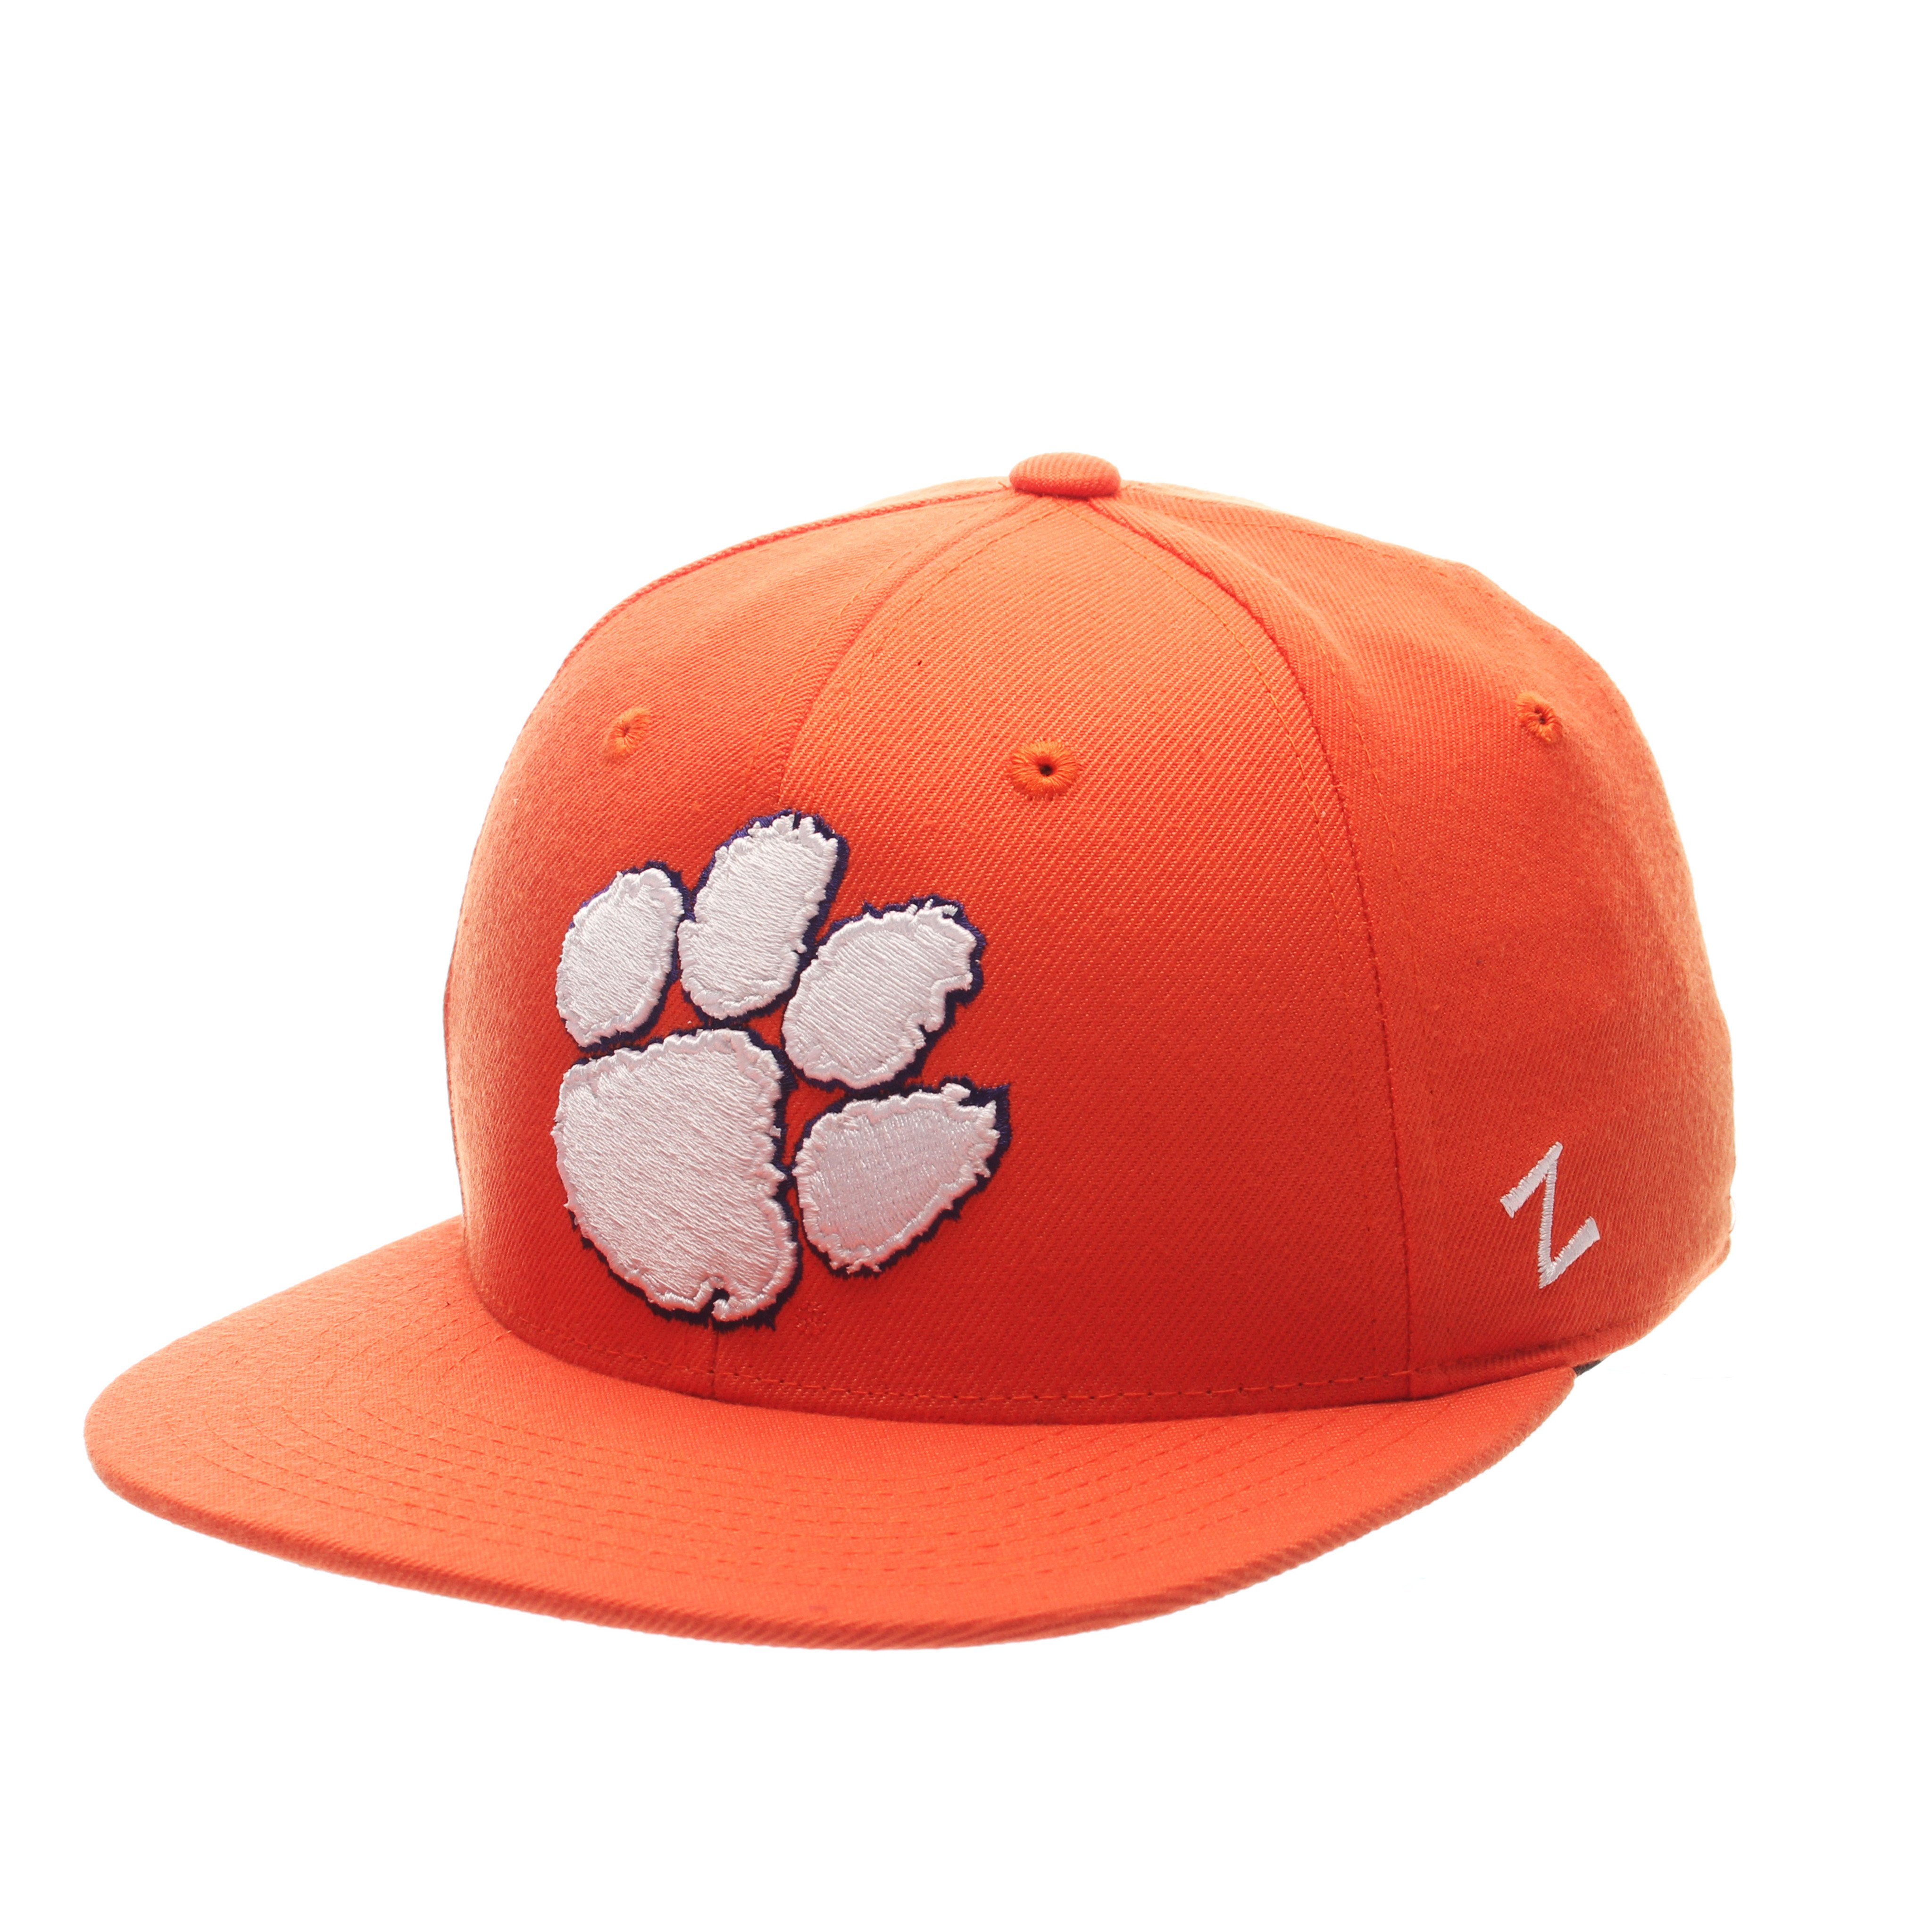 b0e07e9242d ... promo code for clemson tigers official ncaa m15 size 7 1 2 fitted hat  cap by